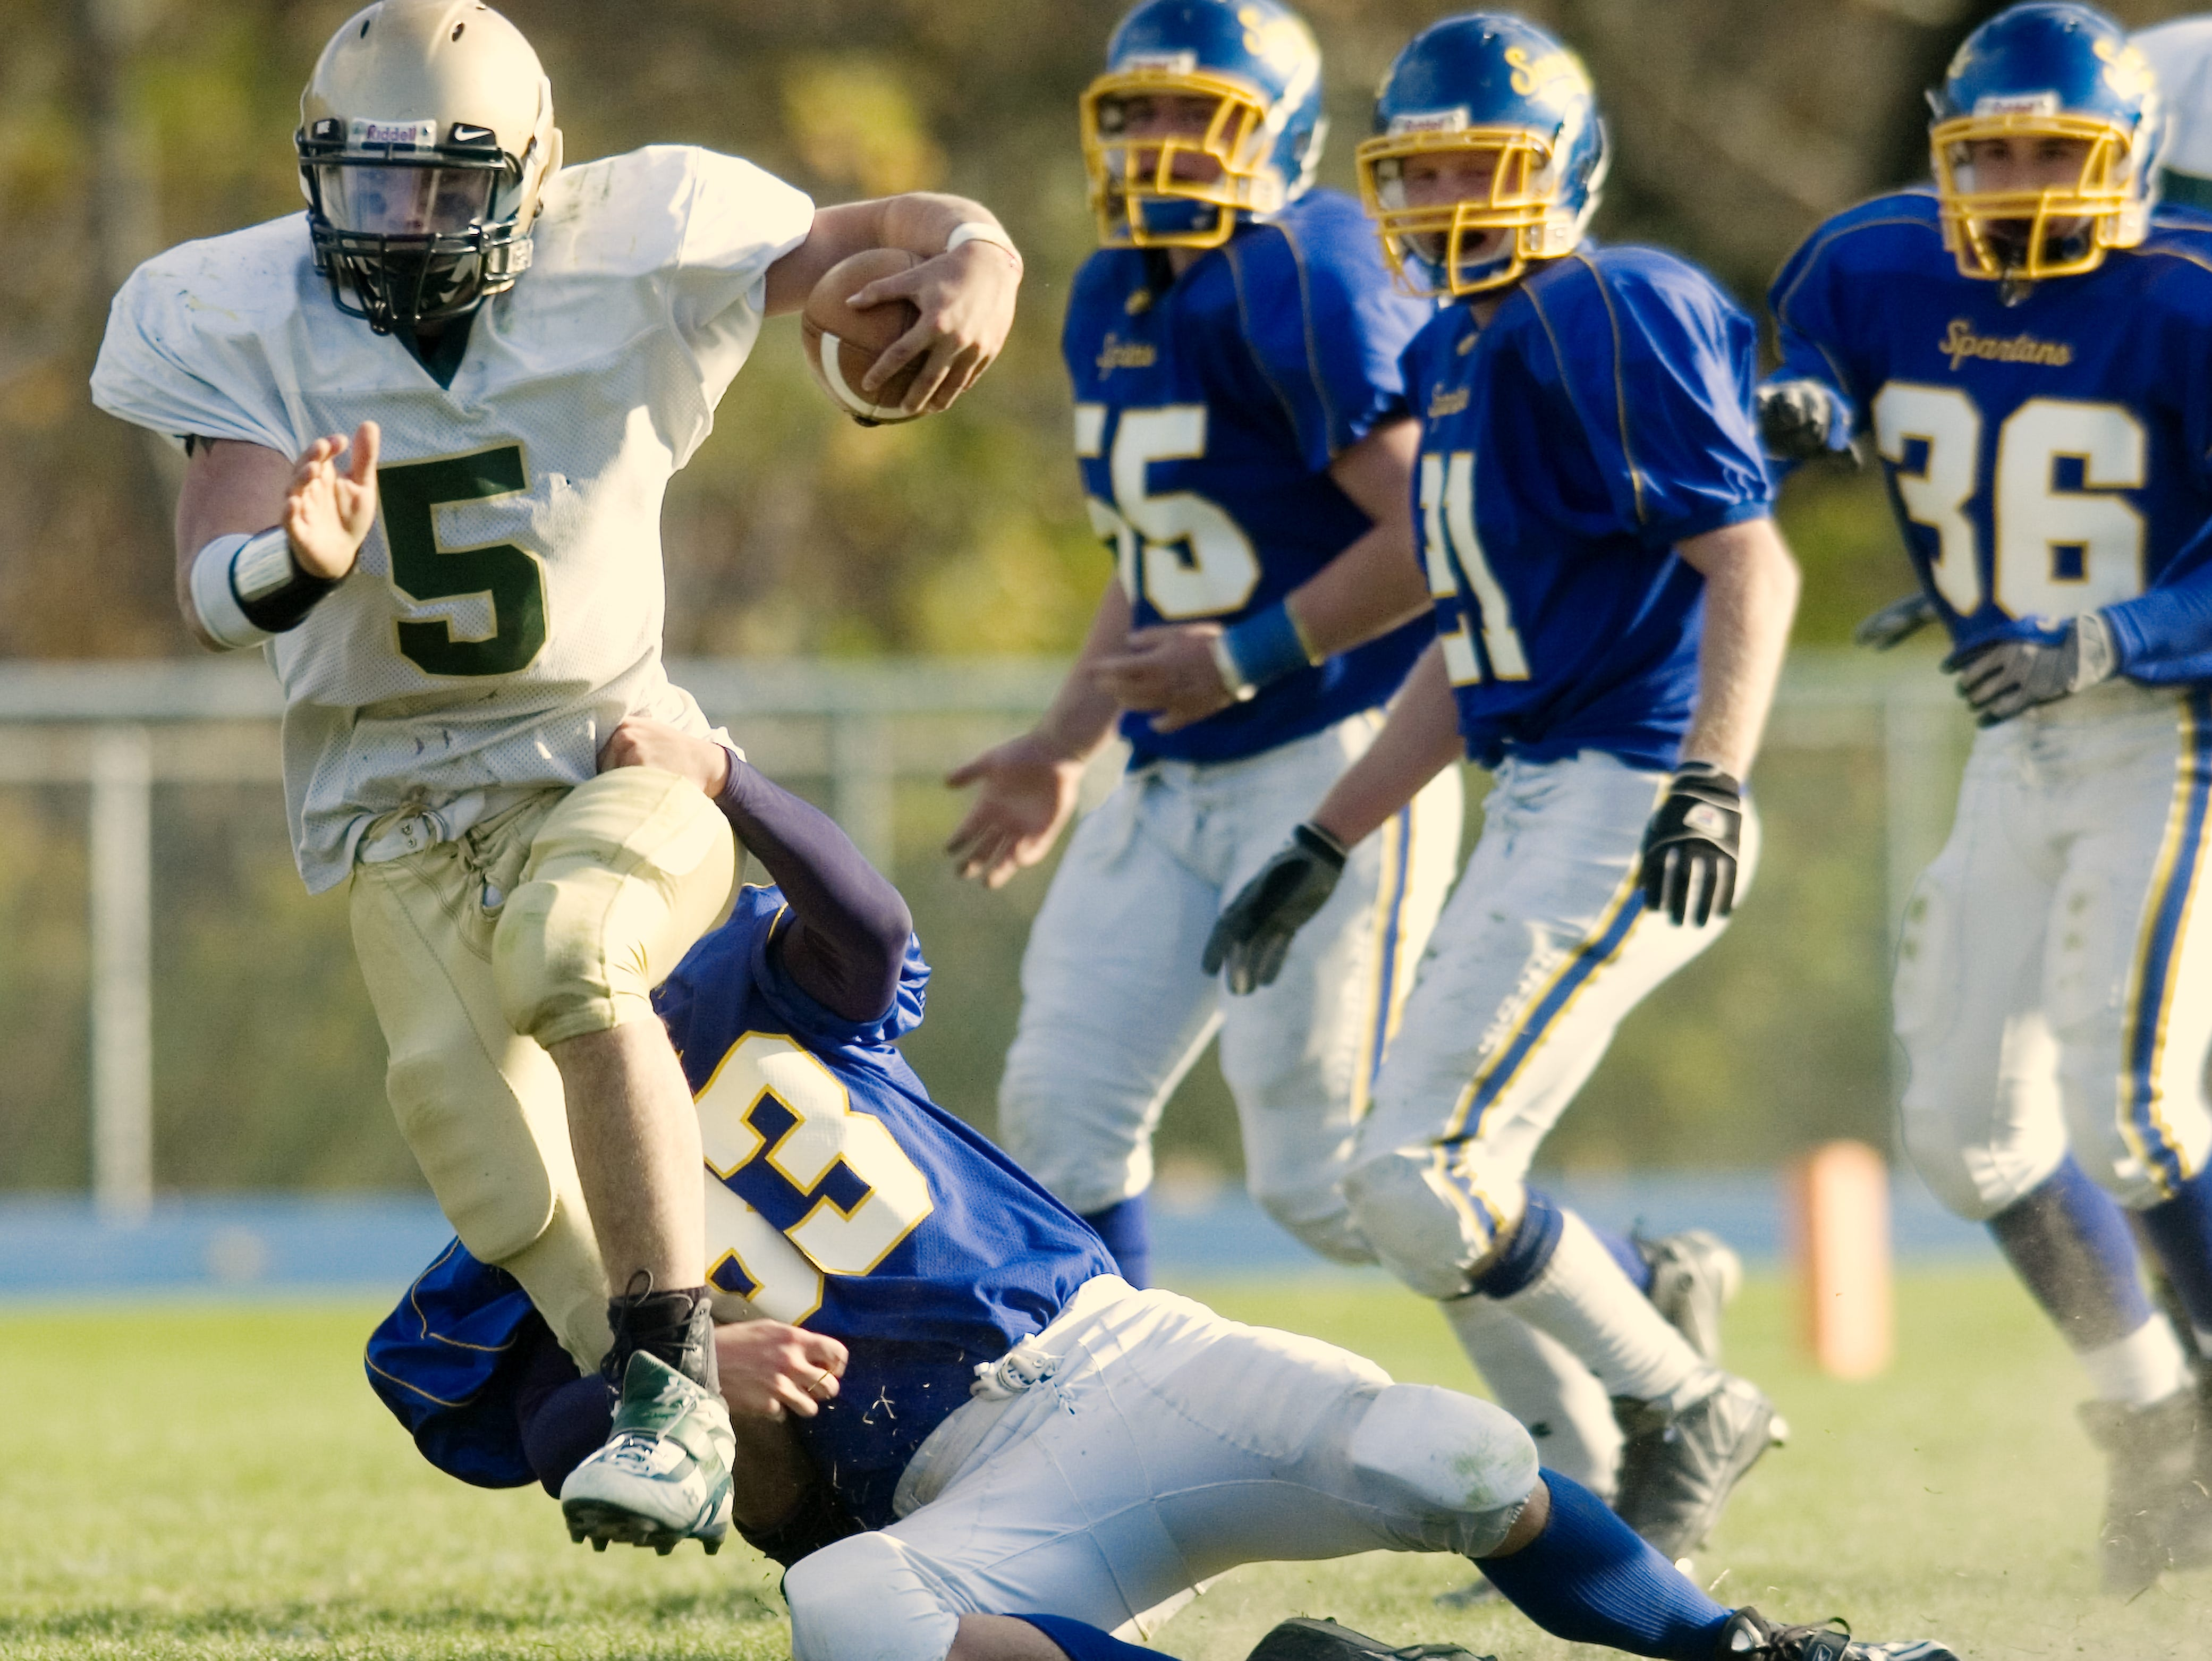 In 2008, Maine-Endwell's Adam Rosenbarker, bottom, tackles Vestal's Cody Scepaniak in the third quarter at M-E.